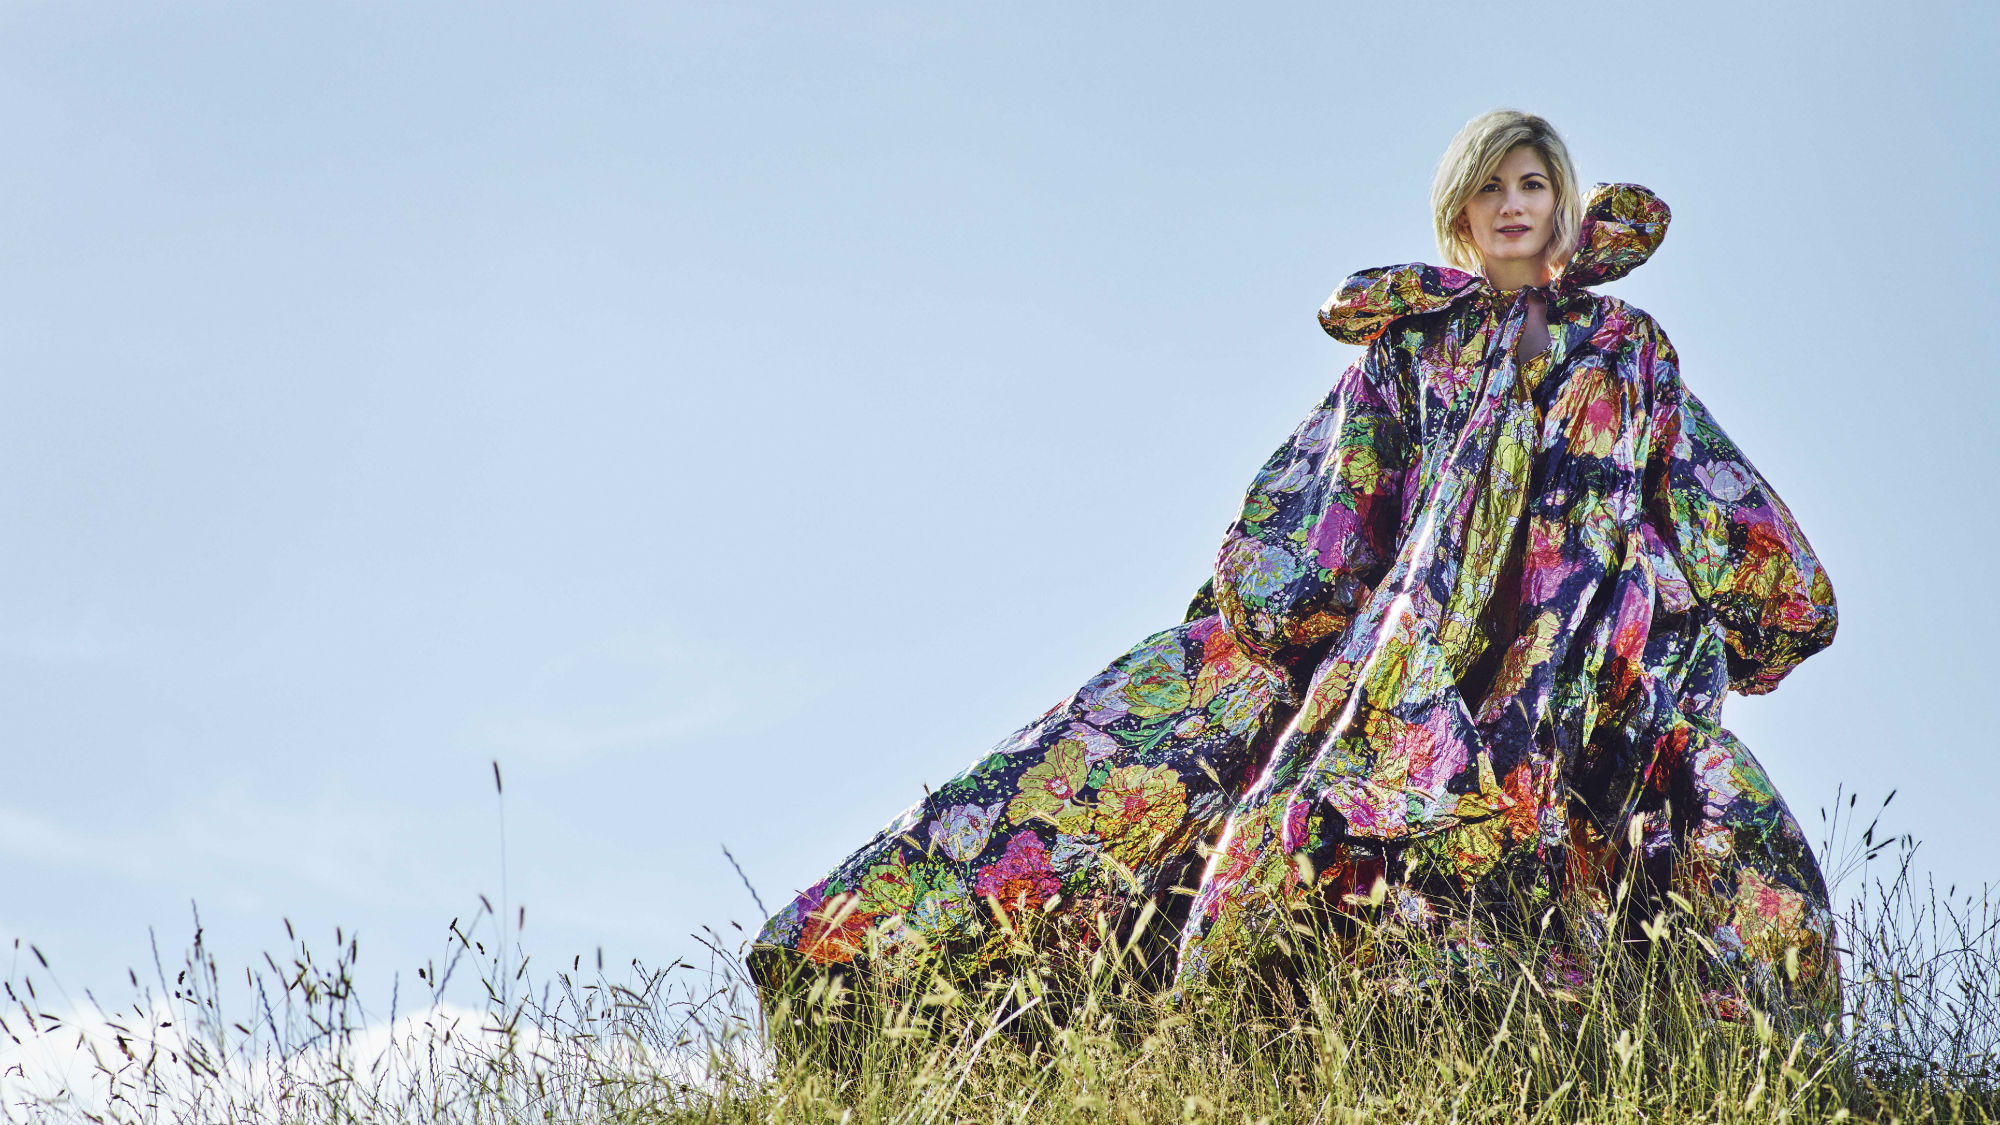 Jodie Whittaker Talks Doctor Who And Doing Things Her Way